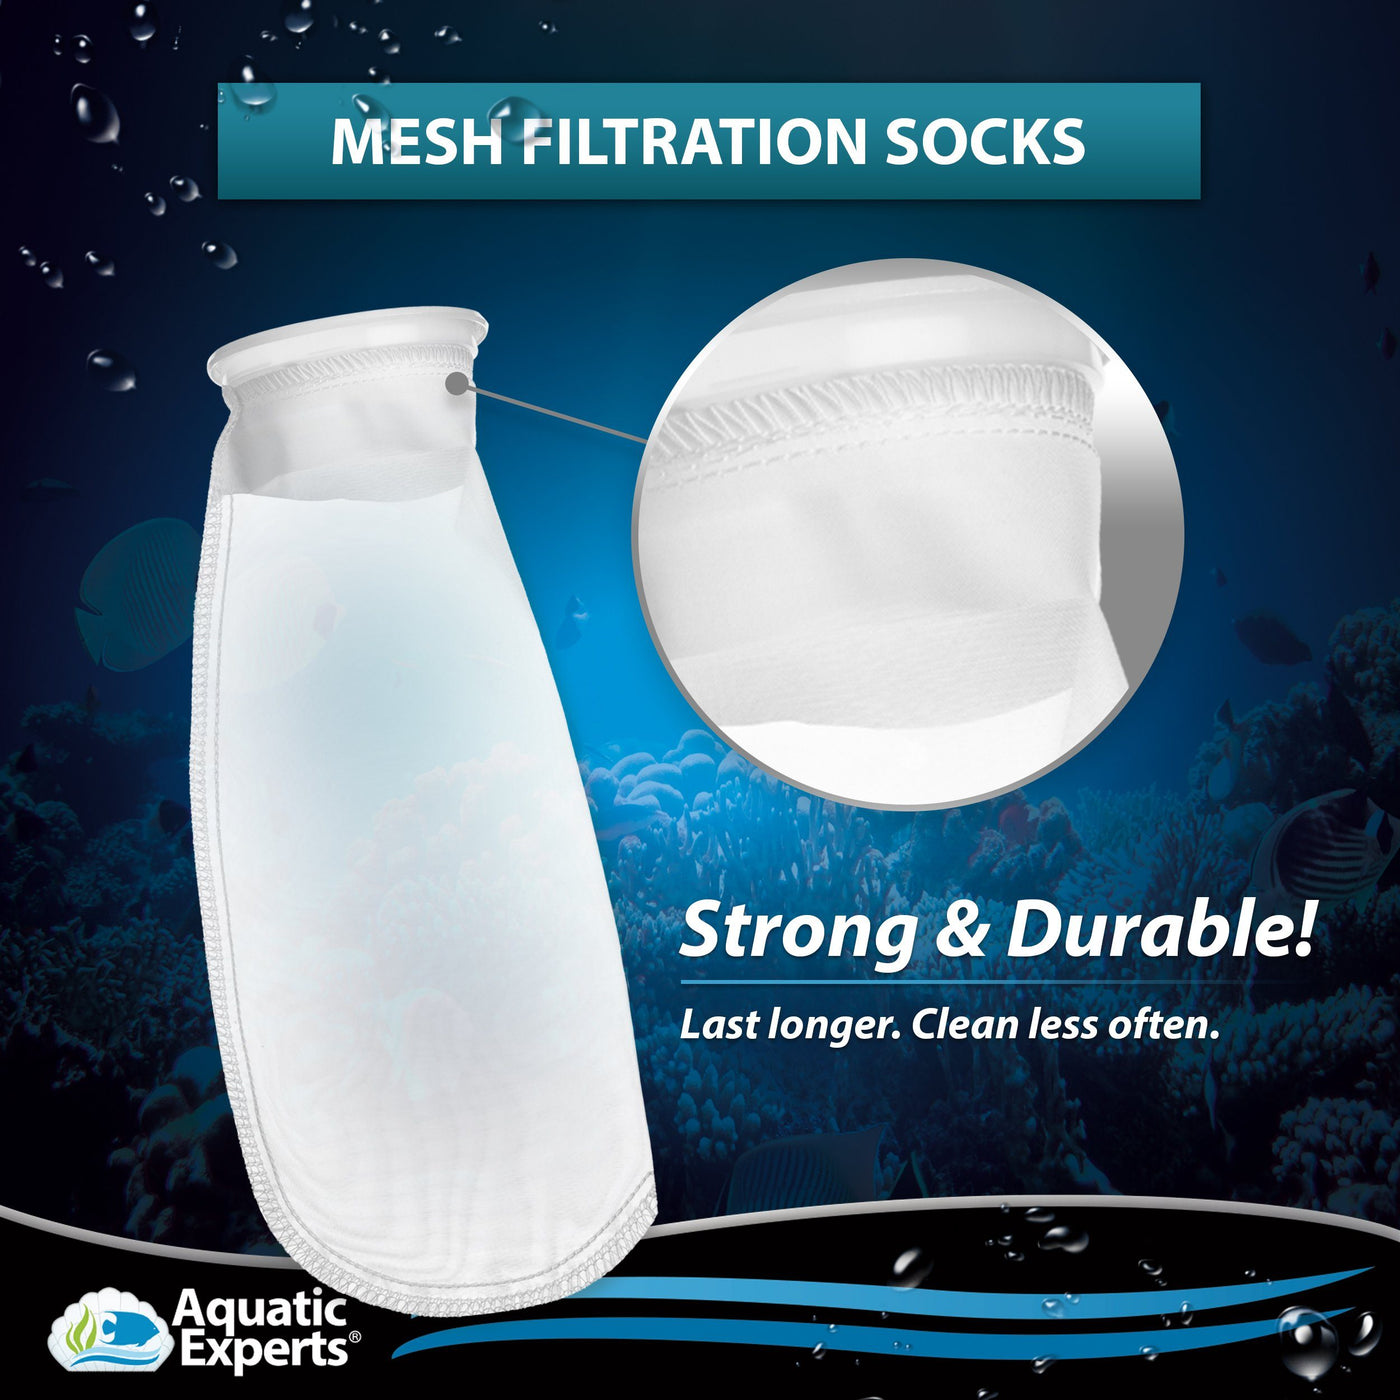 MESH Filter Socks 200 Micron - 4 Inch Ring by 11 Inch Long - MEDIUM - 2 Pack Aquatic Experts